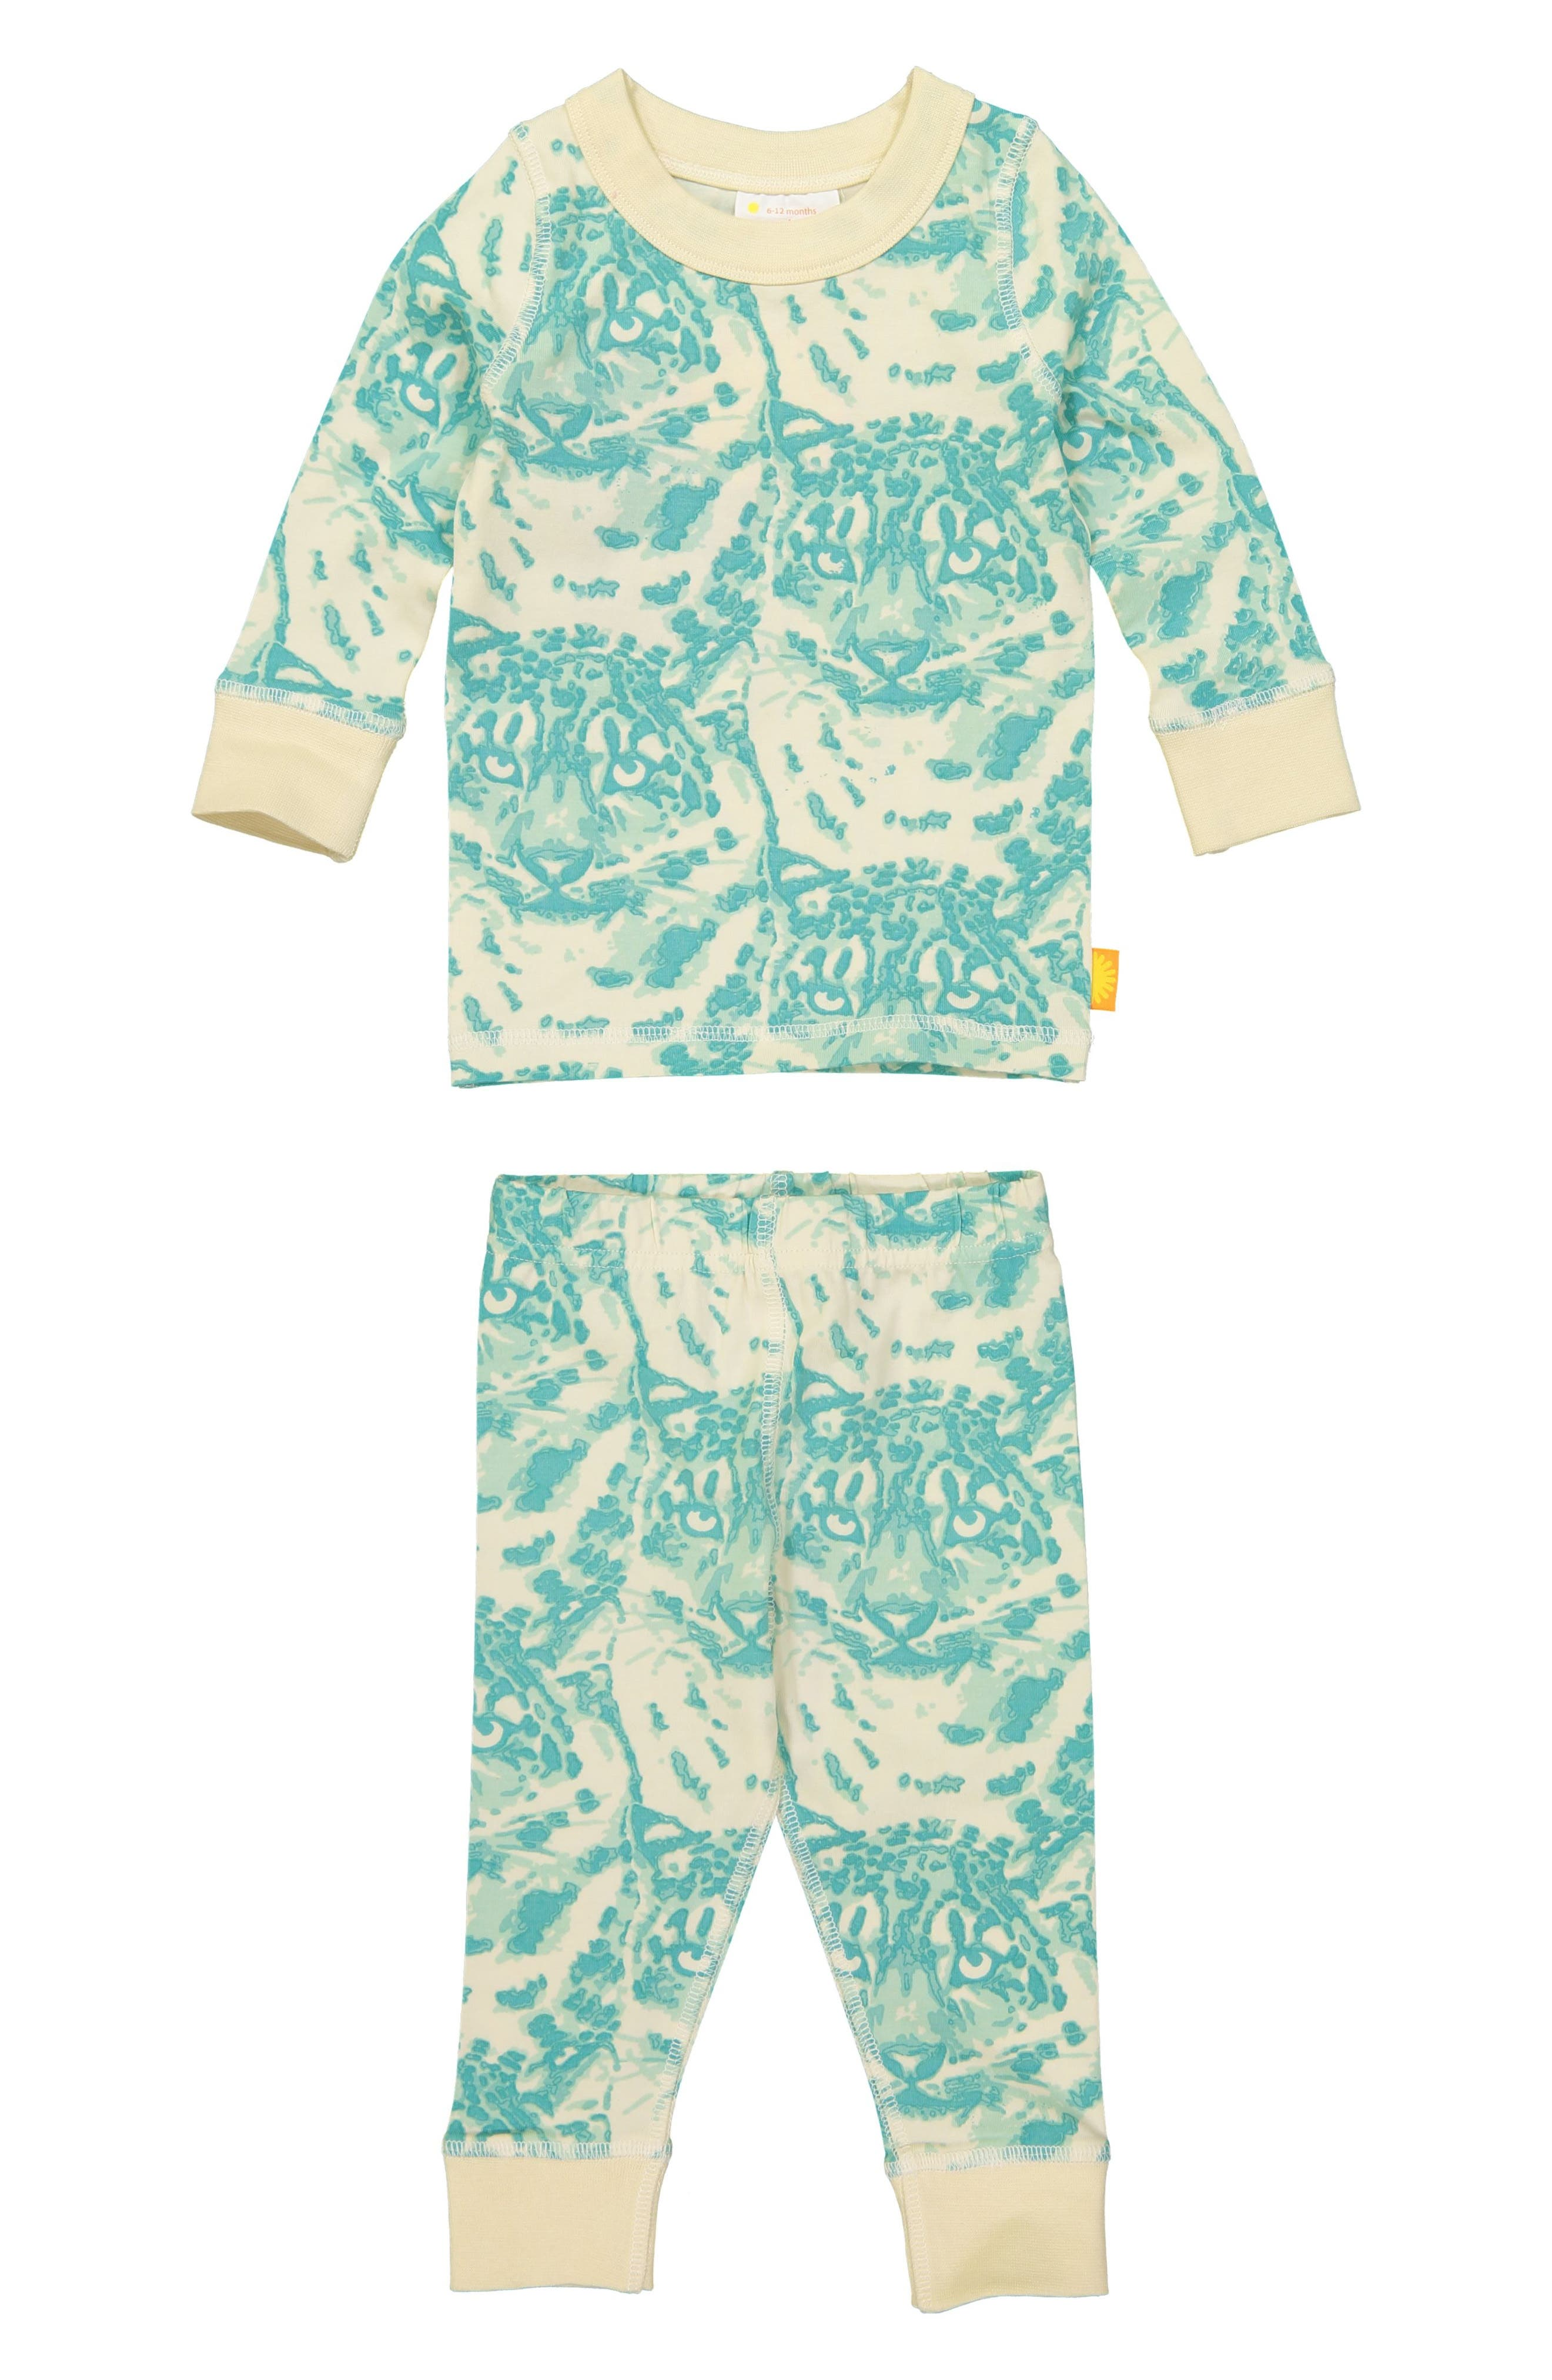 Infant Girls Masala Baby Cat Camo Organic Cotton Fitted TwoPiece Pajamas Size 1218M  Bluegreen